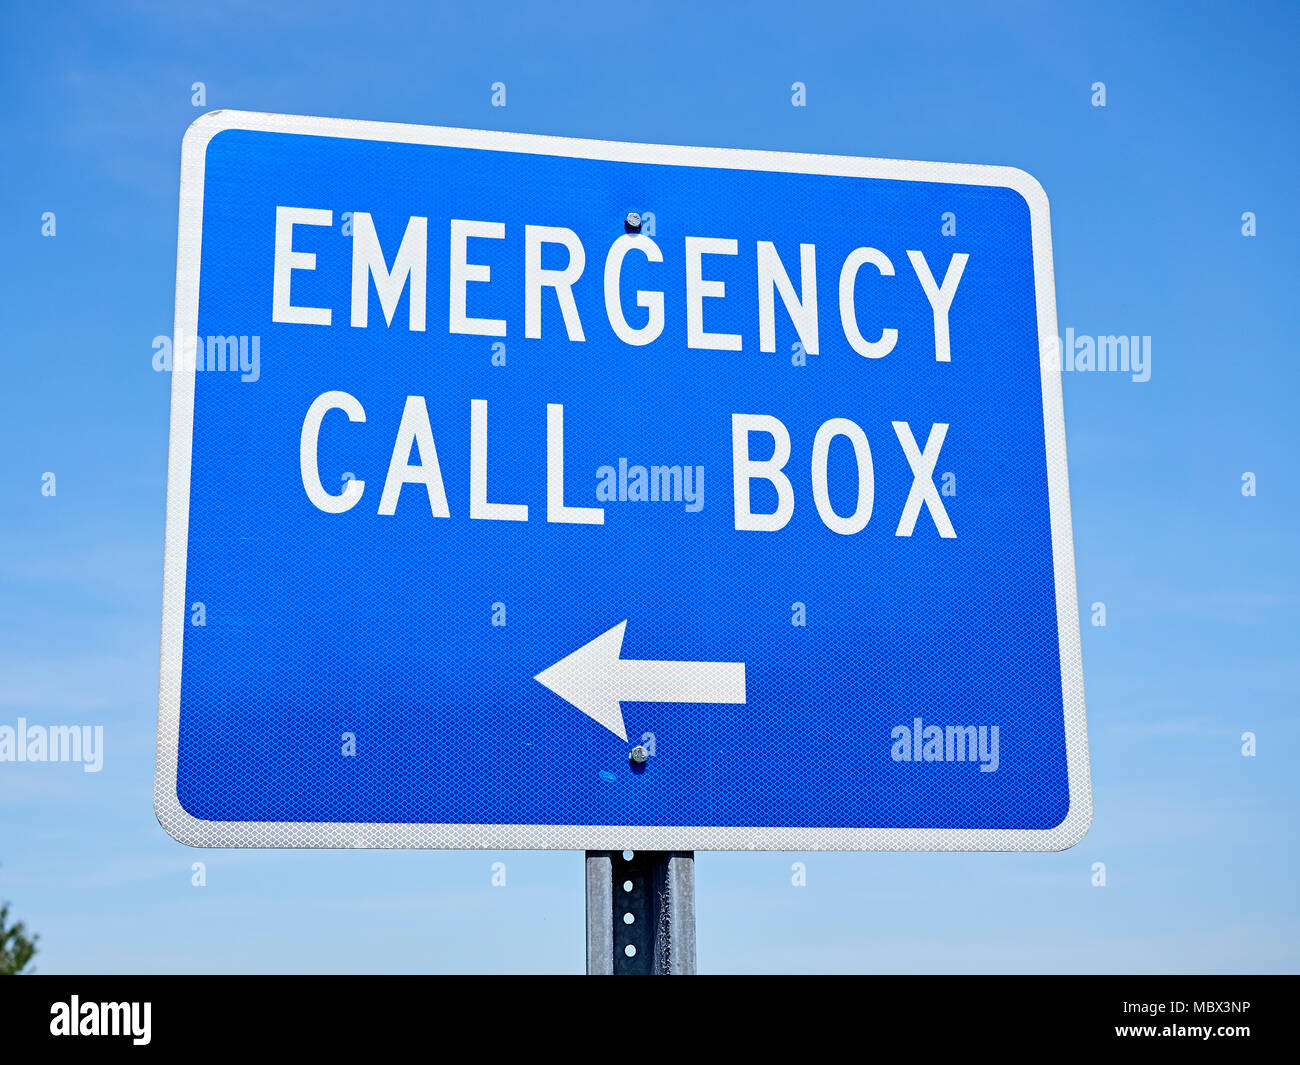 Emergency call box sign pointing in the direction of a communication box that notifies a 911 operator of trouble or an emergency in Alabama USA. - Stock Image